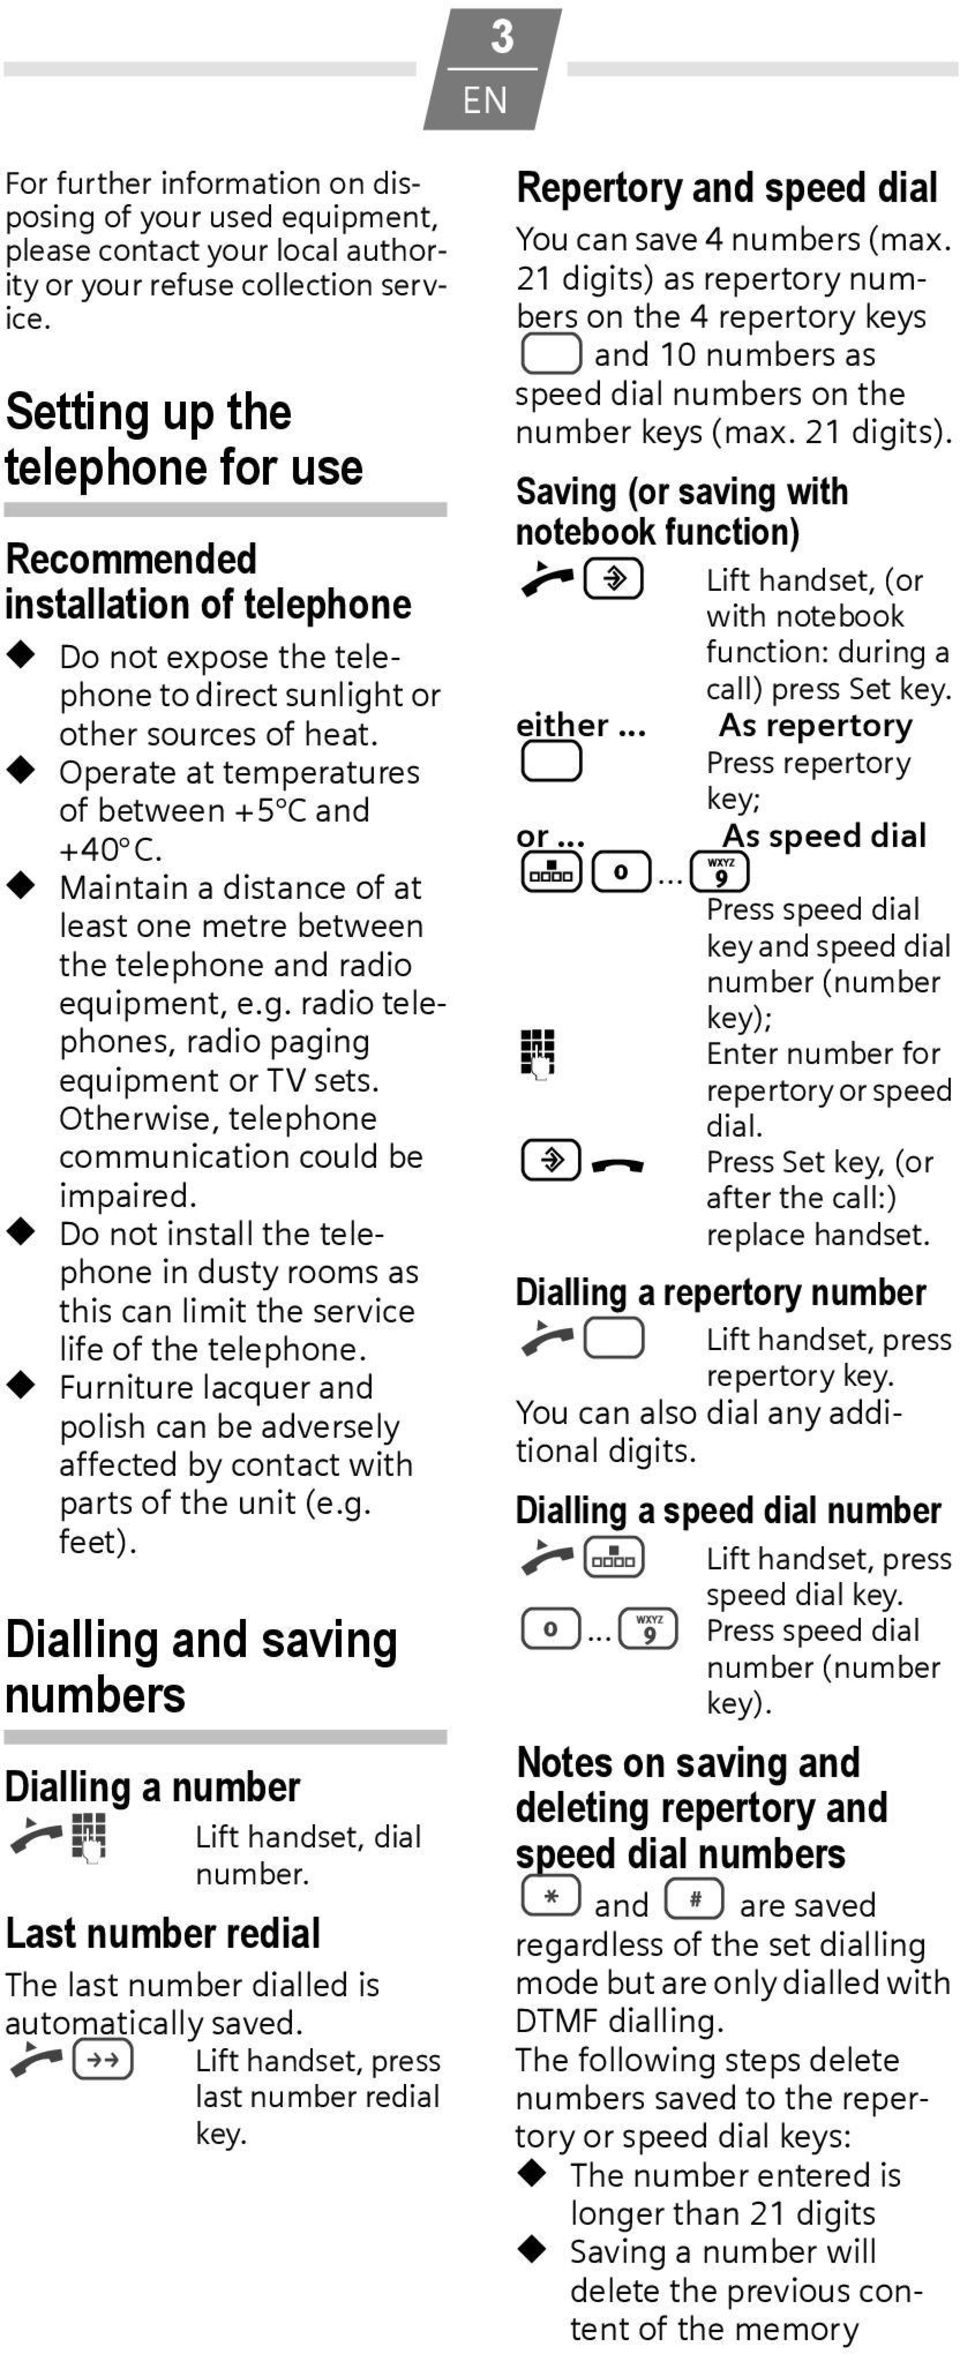 Maintain a distance of at least one metre between the telephone and radio equipment, e.g. radio telephones, radio paging equipment or TV sets. Otherwise, telephone communication could be impaired.